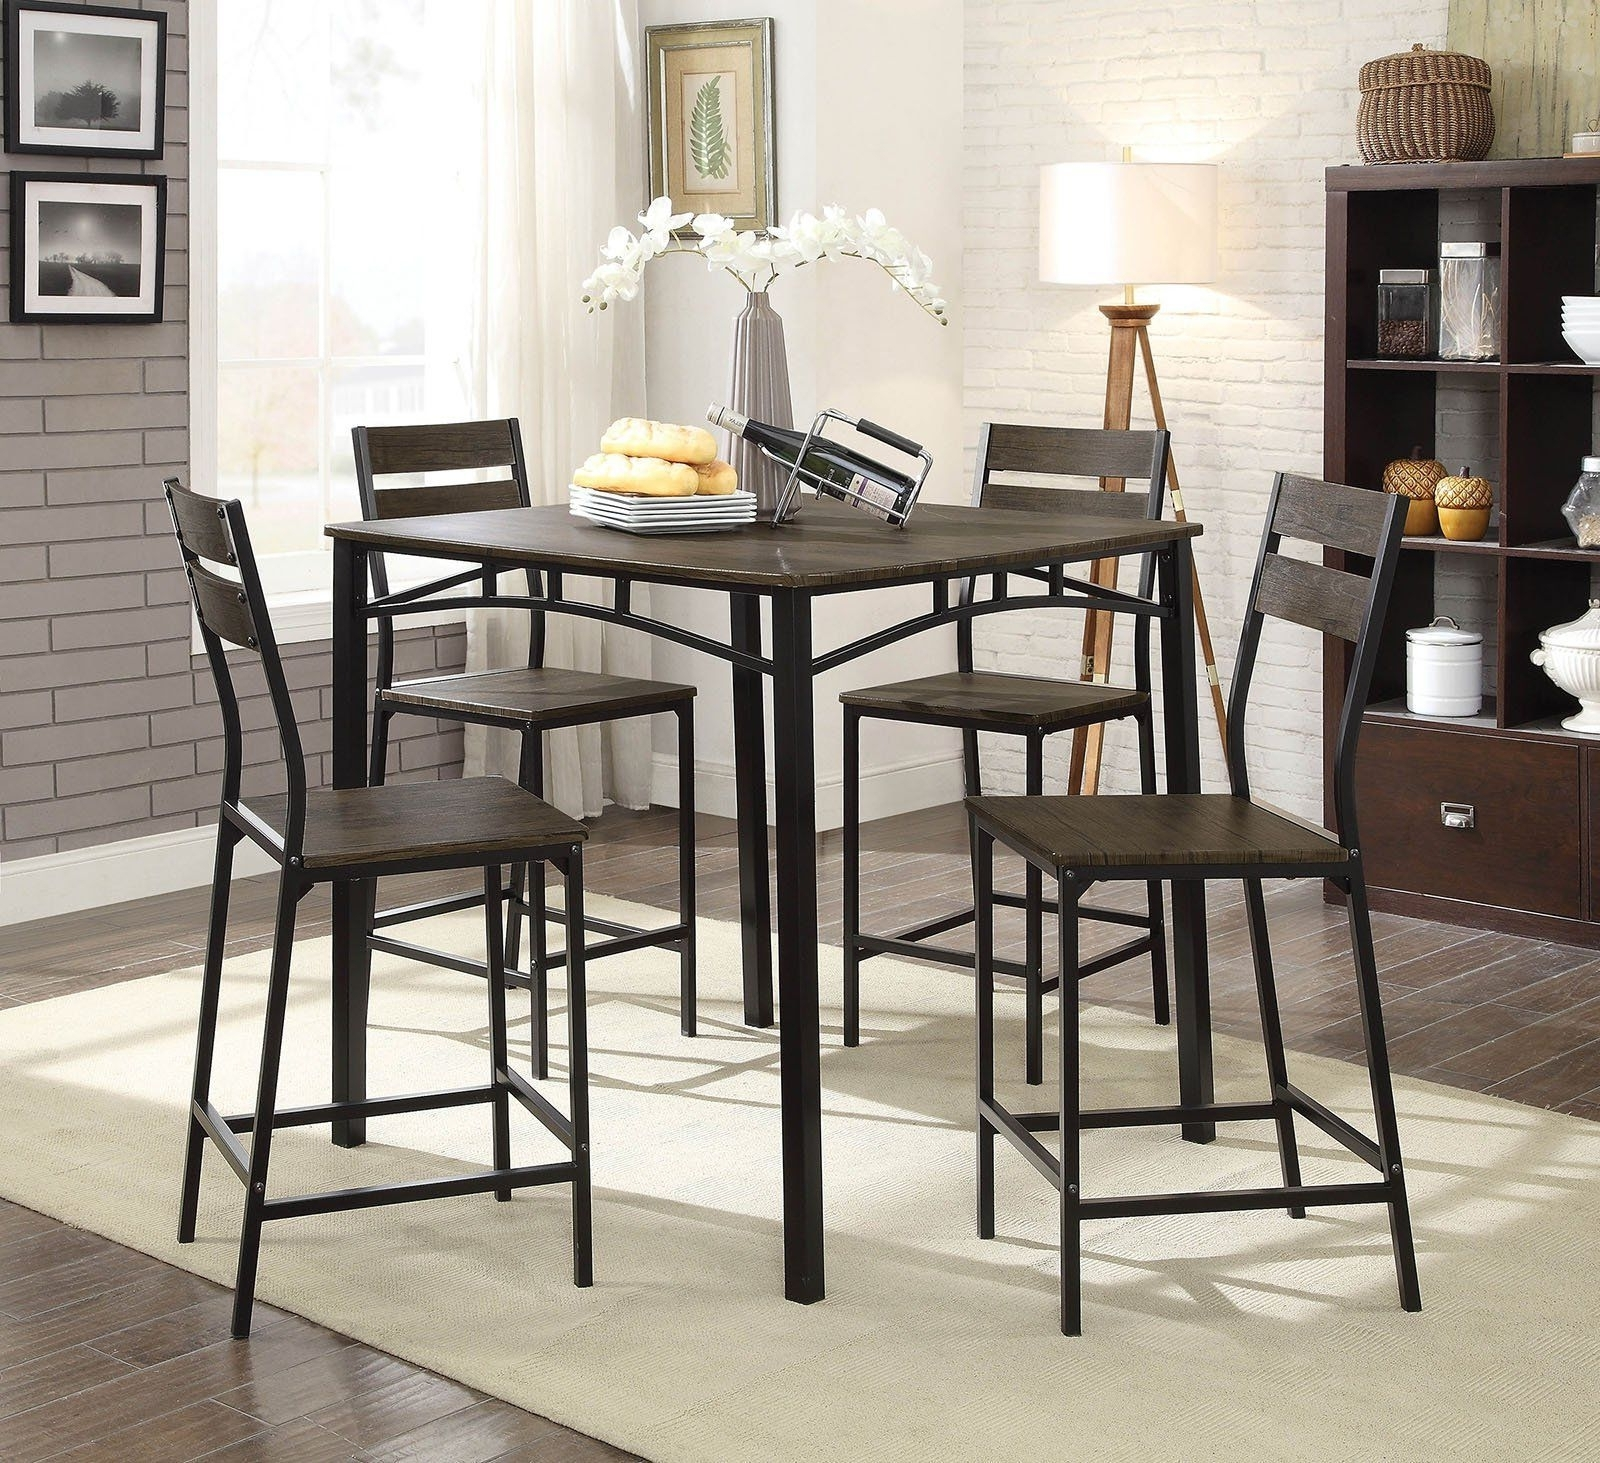 Well Known 5 Piece Metal And Wood Counter Height Table Set In Antique Brown In Throughout Market 5 Piece Counter Sets (View 22 of 25)